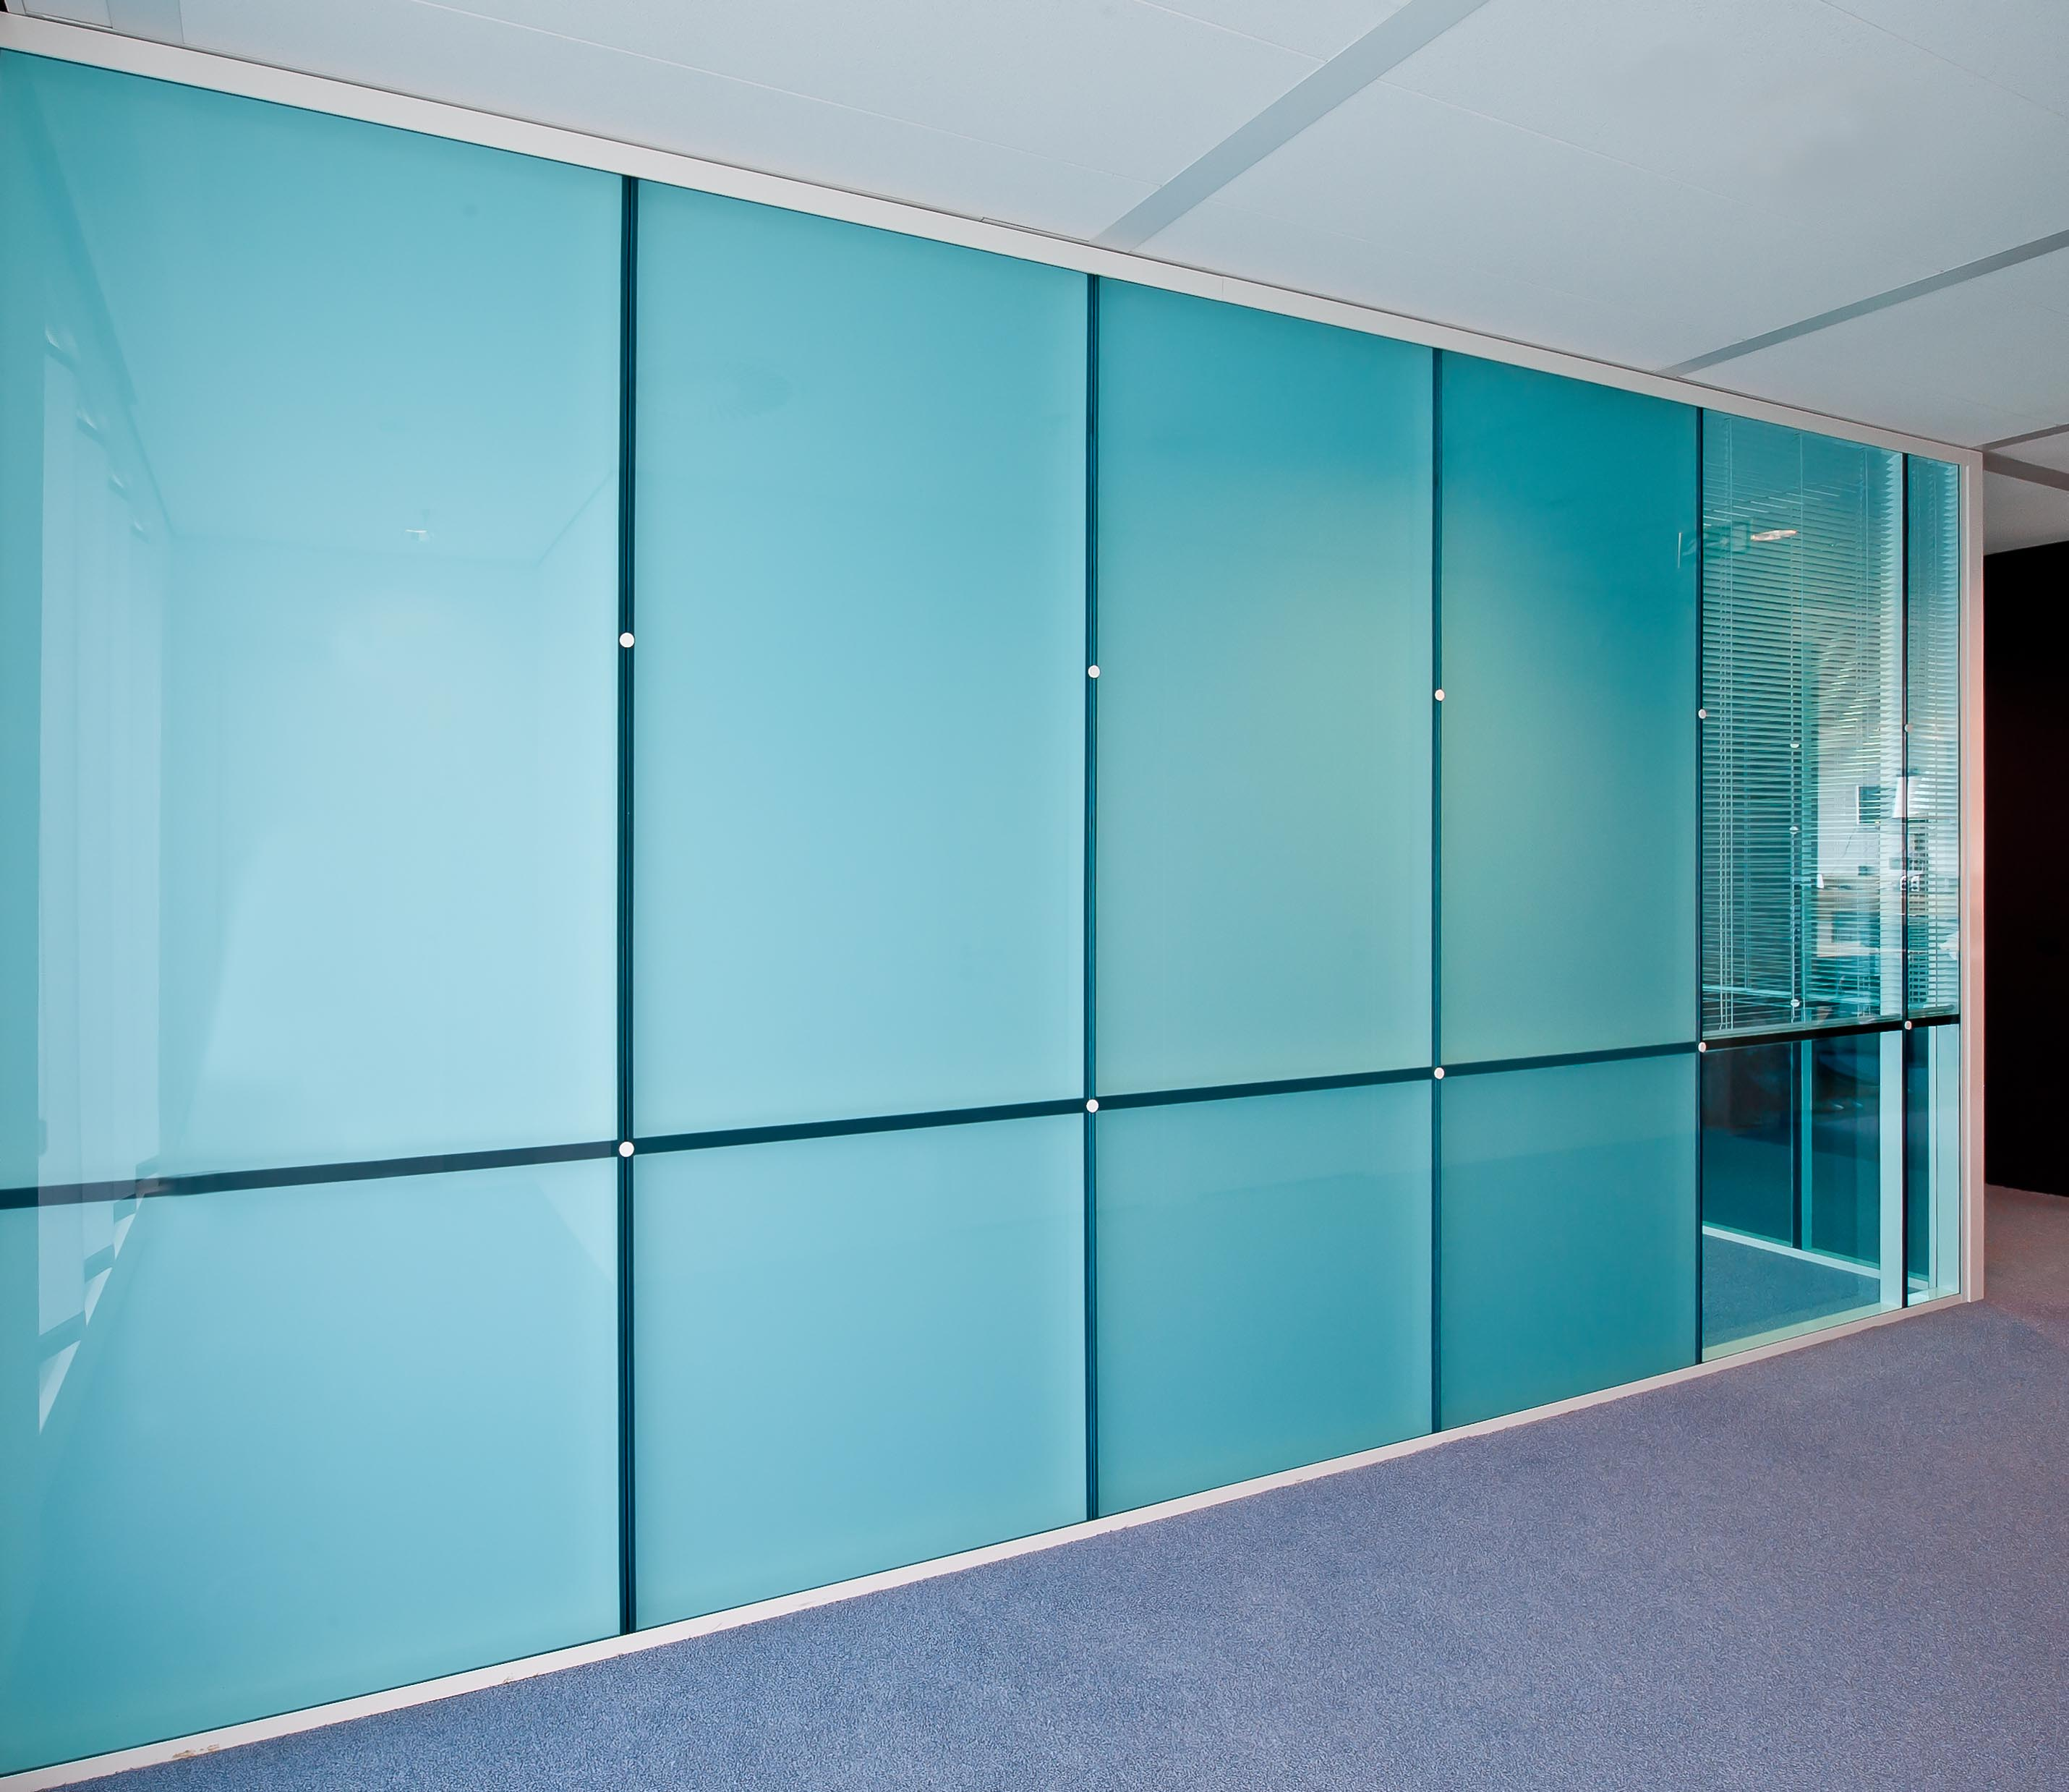 Full glass flush wall with blue glass and shades between the glass